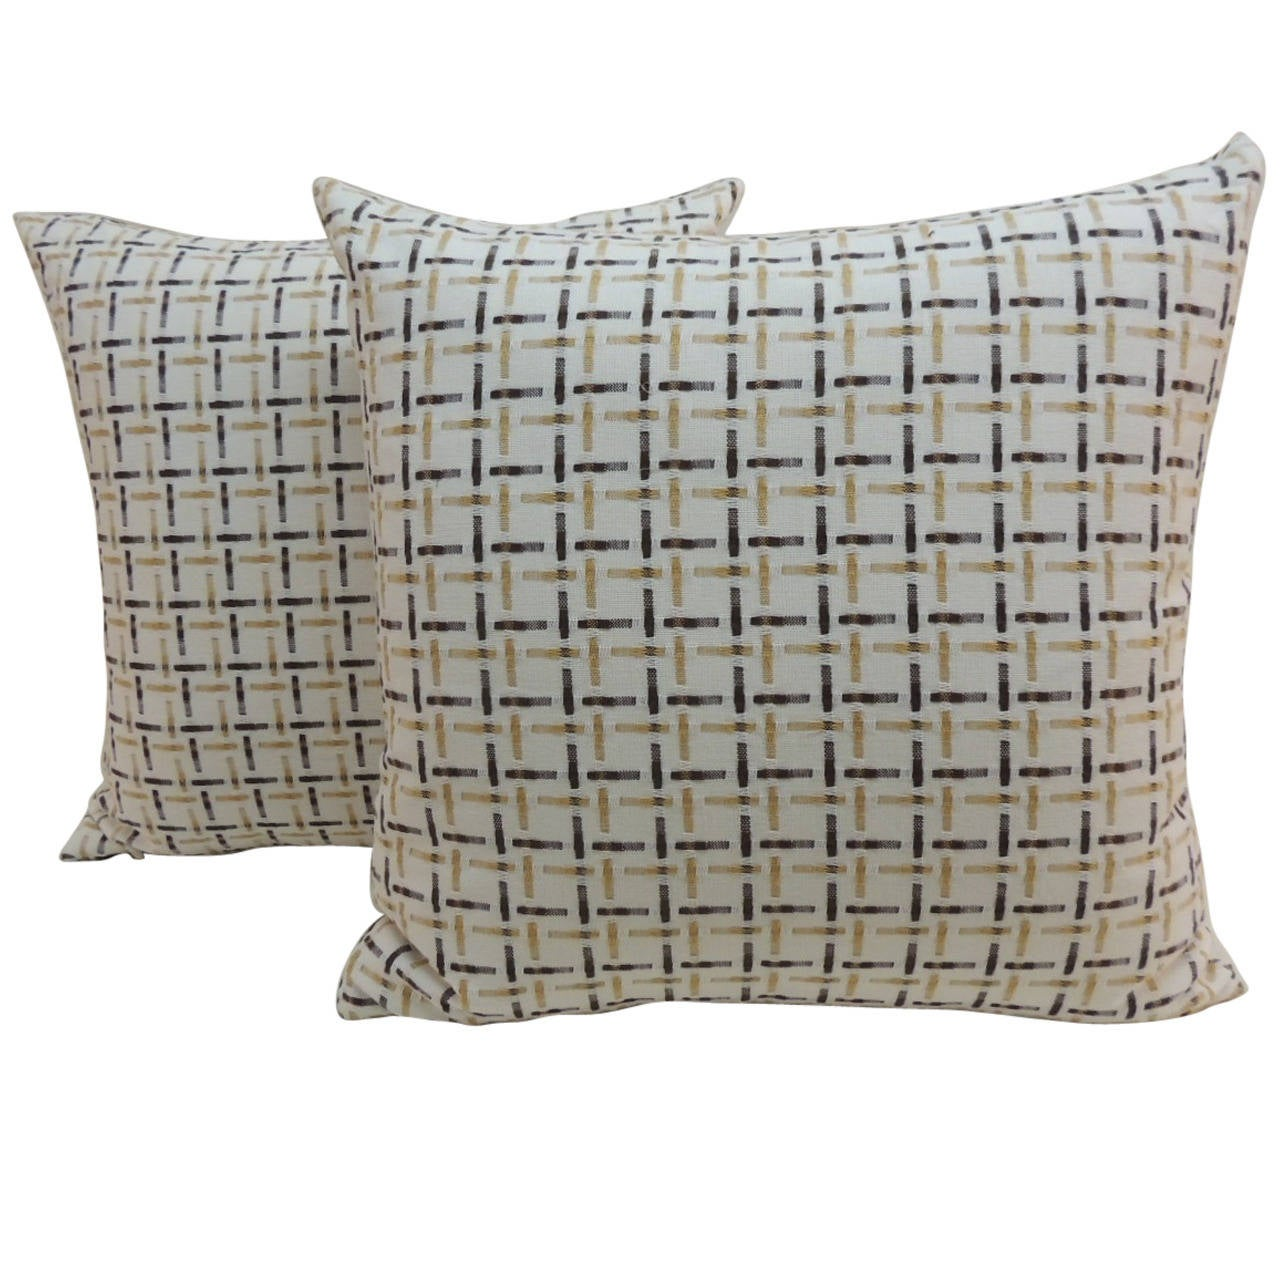 Pair of Vintage Plaid French Basket Weave Yellow Pillows at 1stdibs